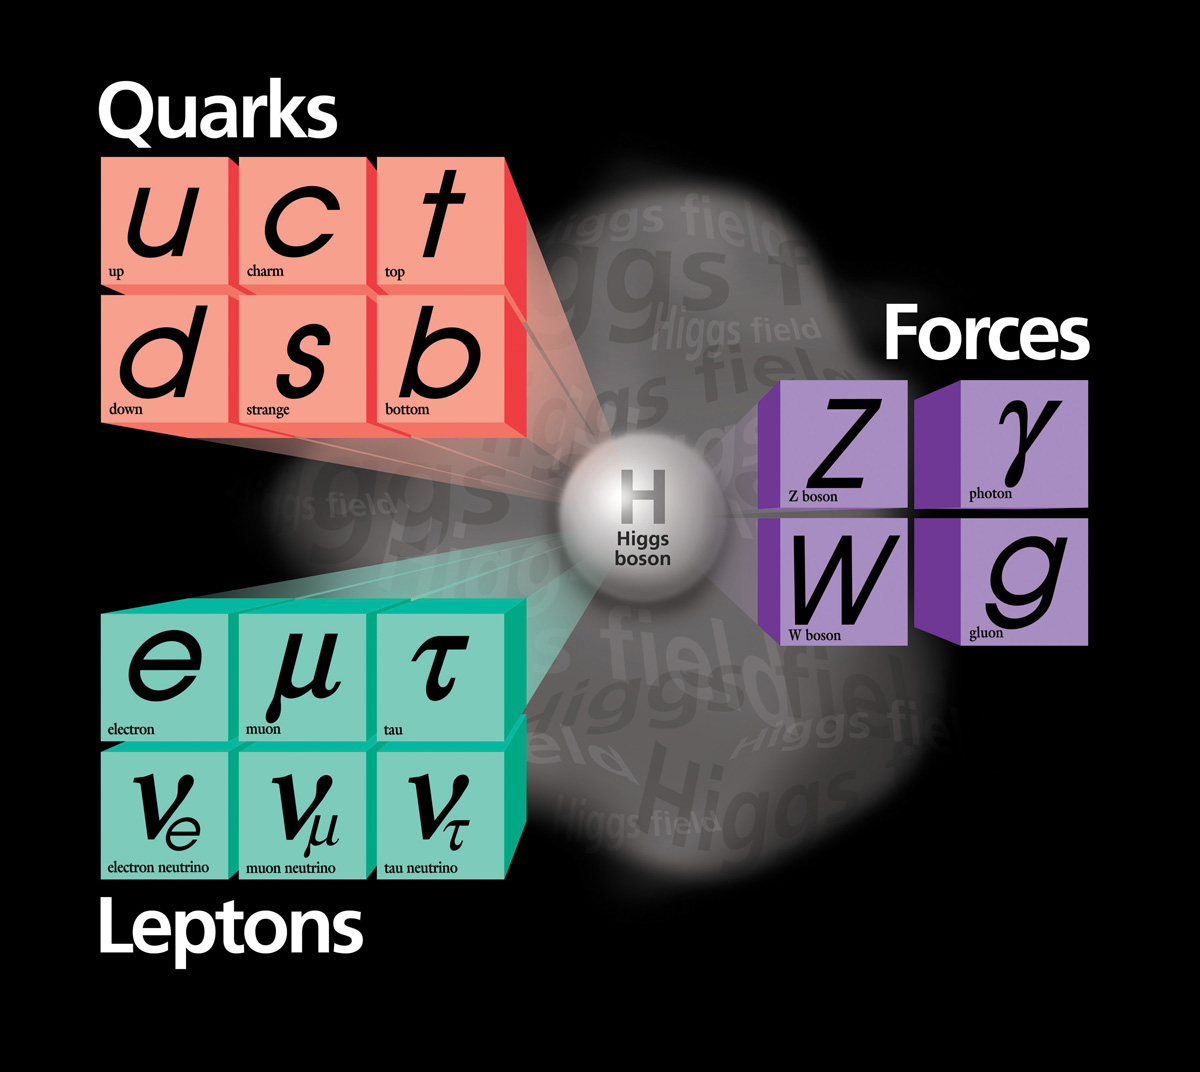 The Standard Model is a triumph of modern physics. With this handful of particles shown here, we can explain all of the matter we have encountered, from atoms to entire galaxies.